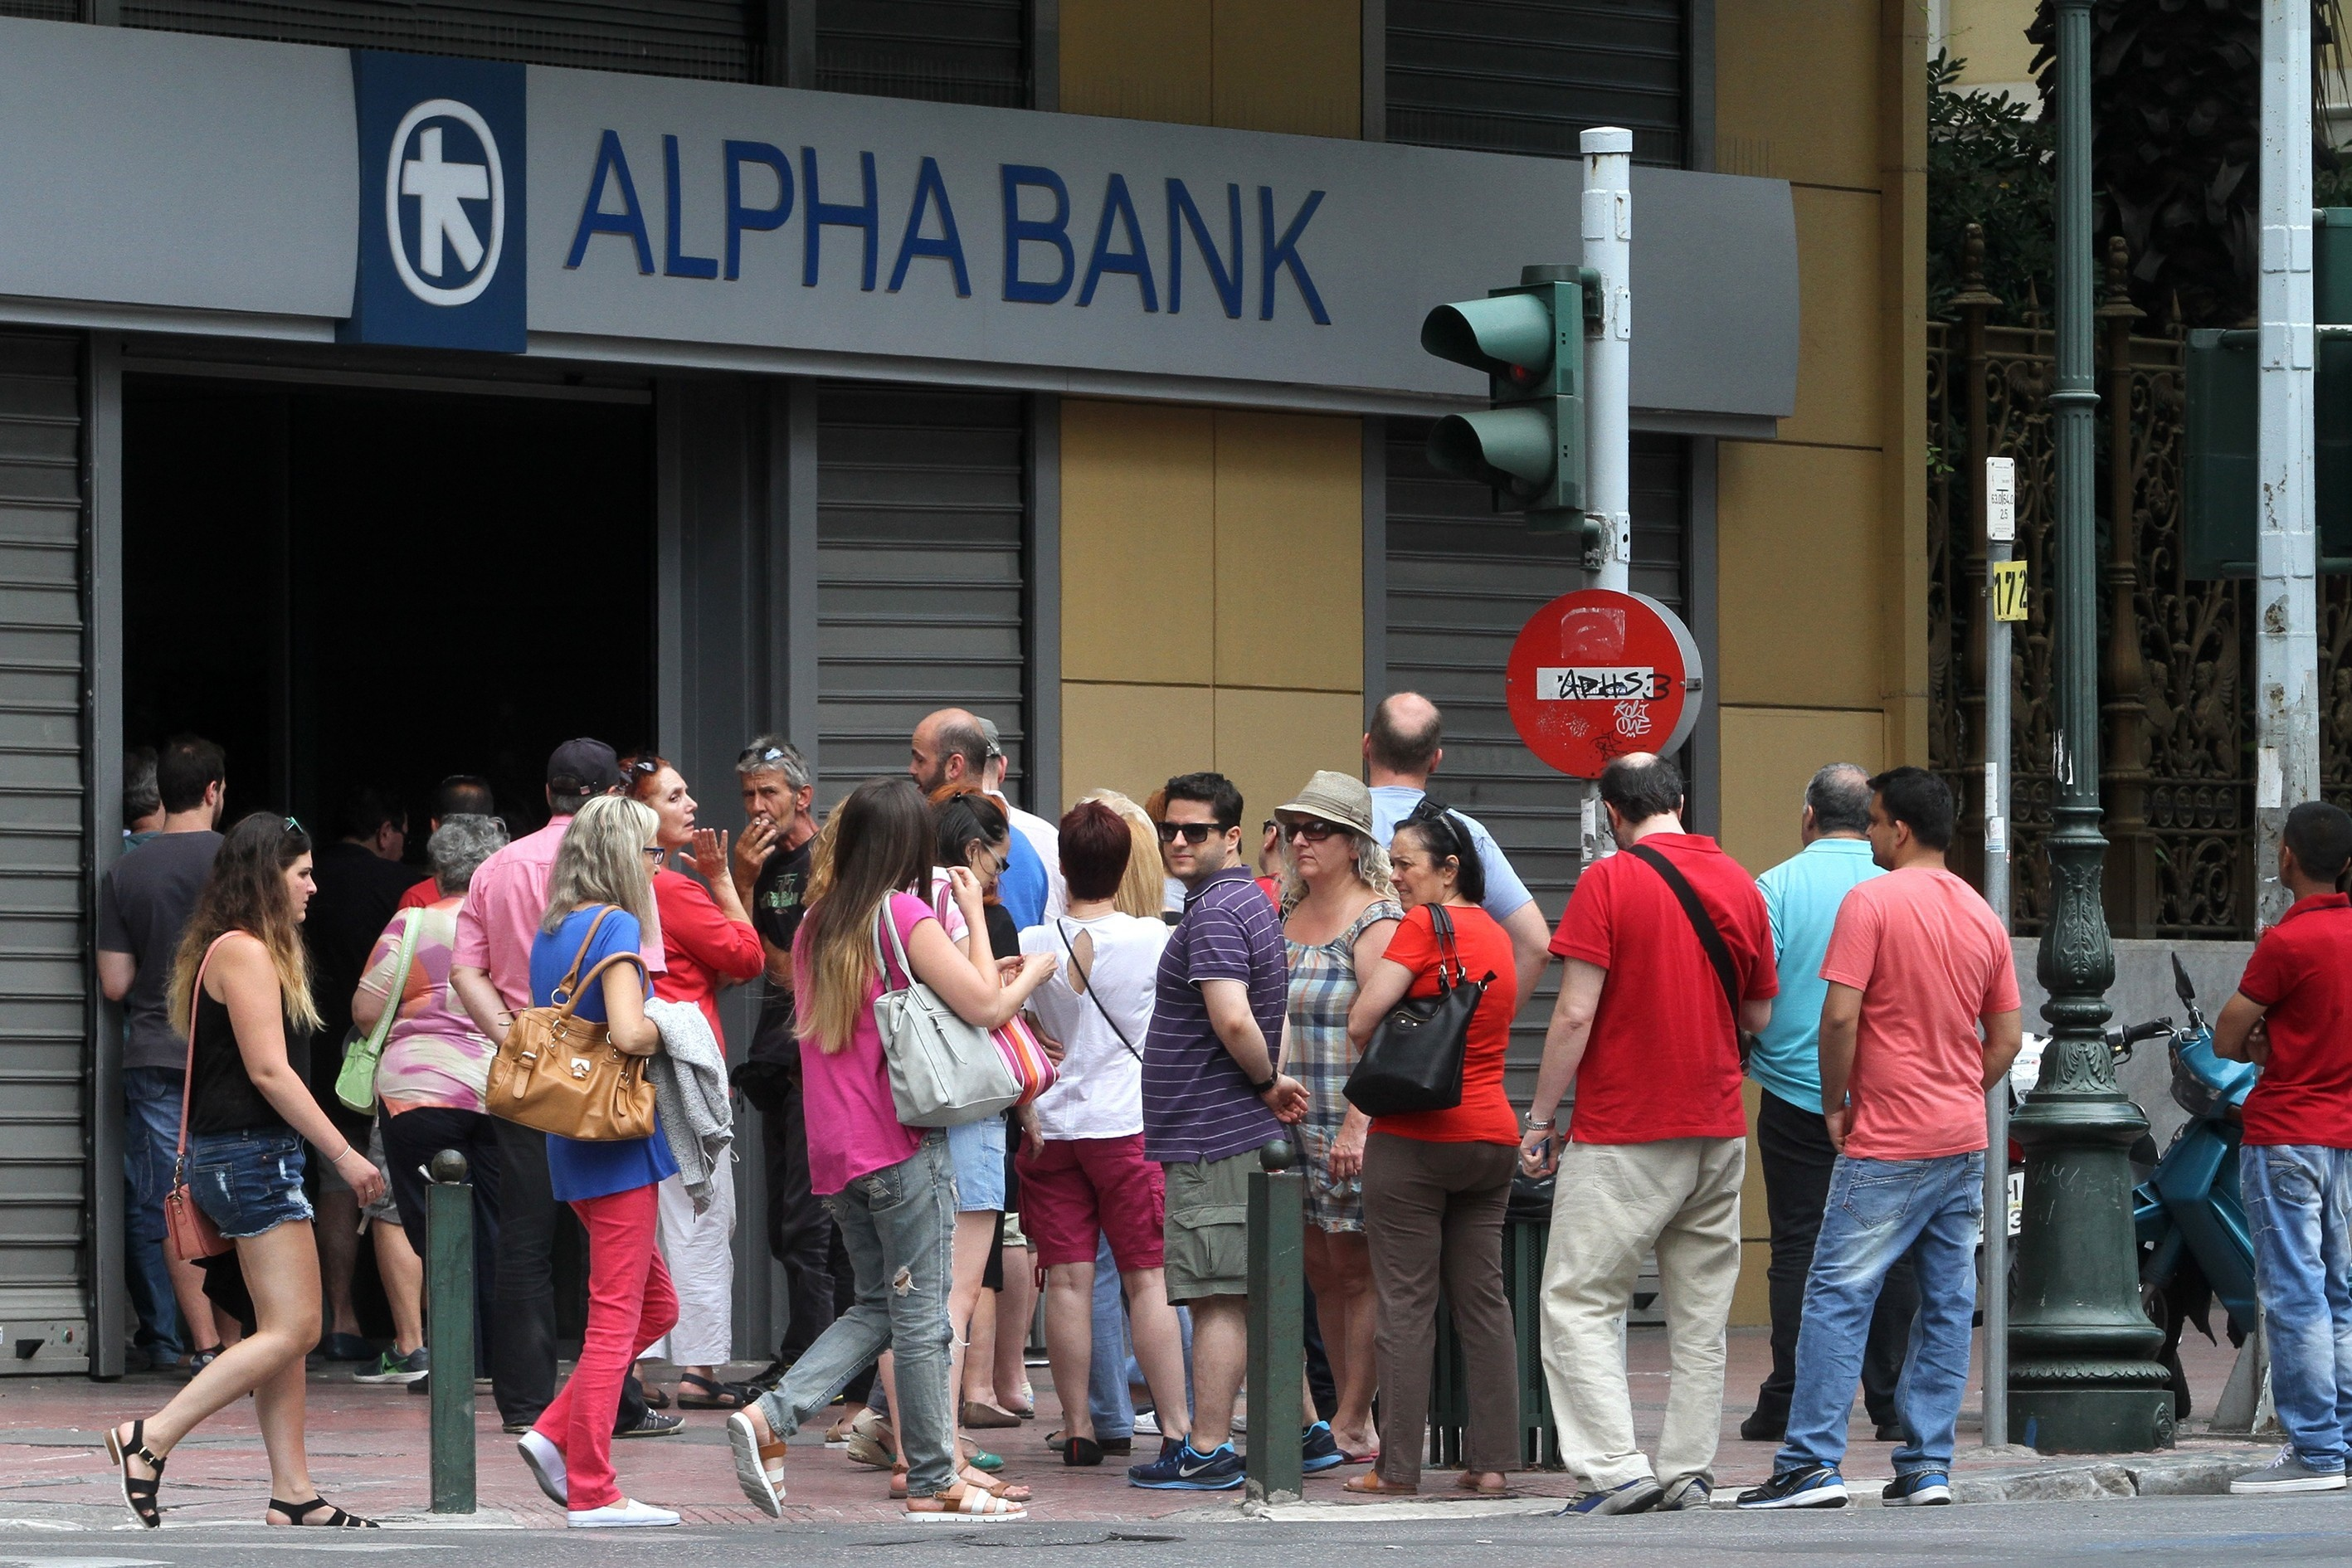 Greeks withdraw their cash from ATMs